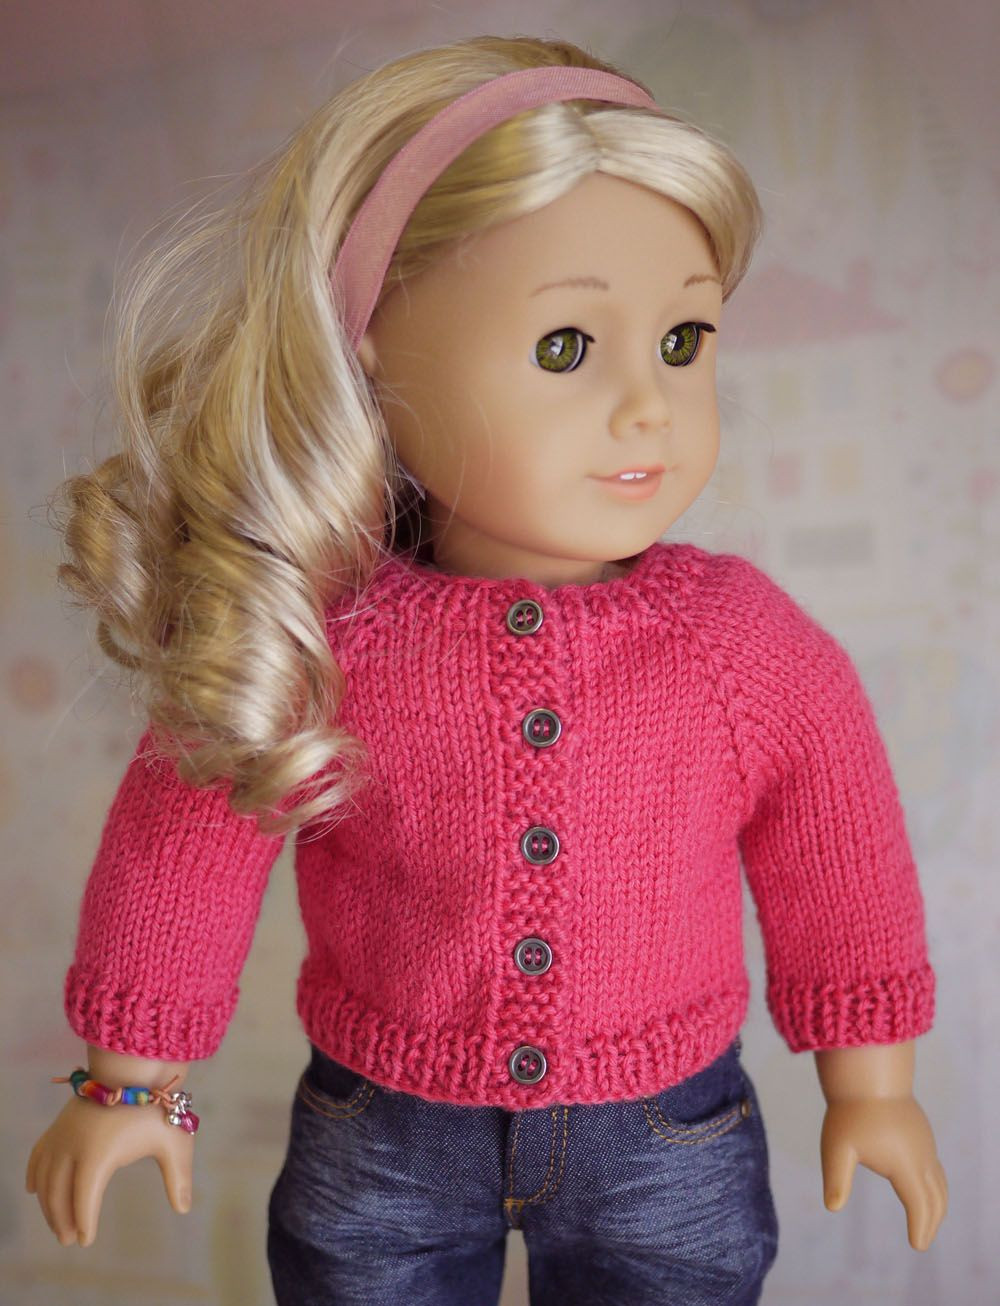 Inspirational Free Patterns Ag and Doll Pinterest American Girl Doll Patterns Of Delightful 40 Photos American Girl Doll Patterns